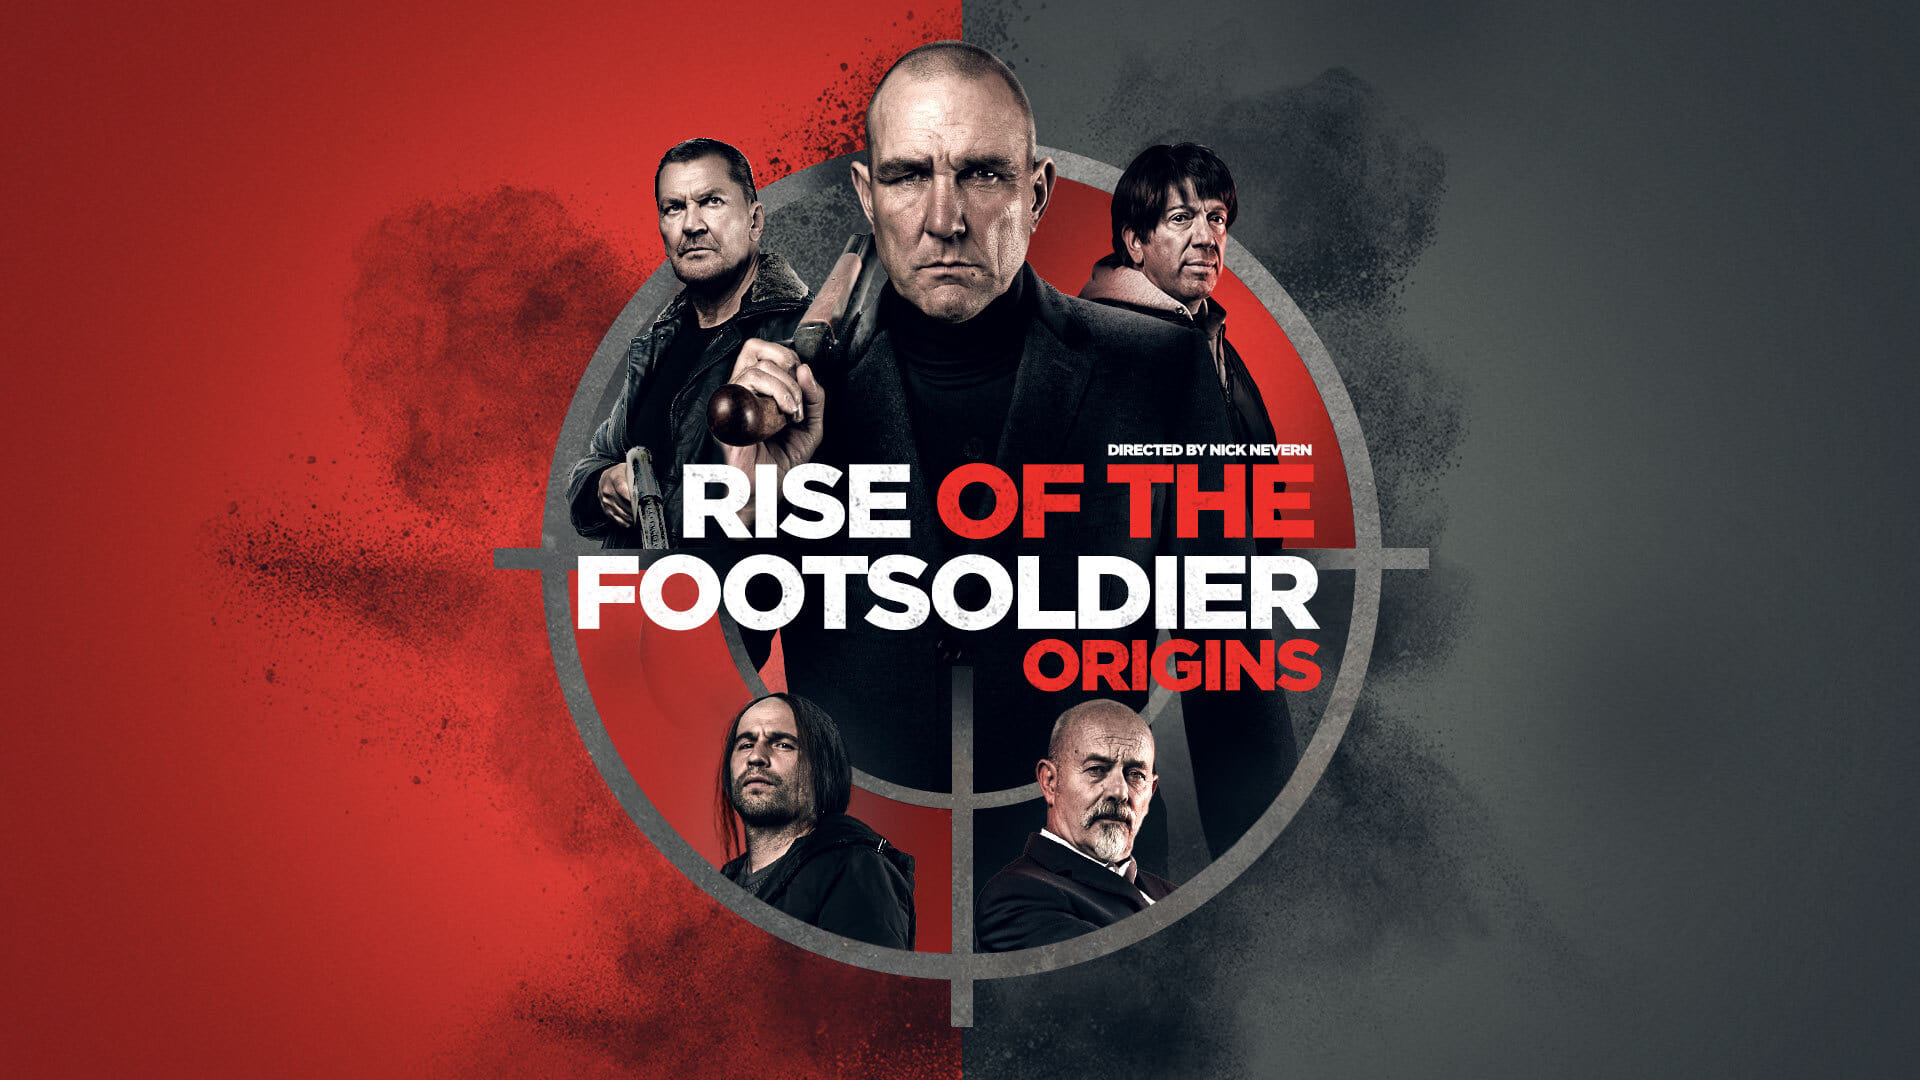 Rise of the Footsoldier: Origins (2021) Streaming Full